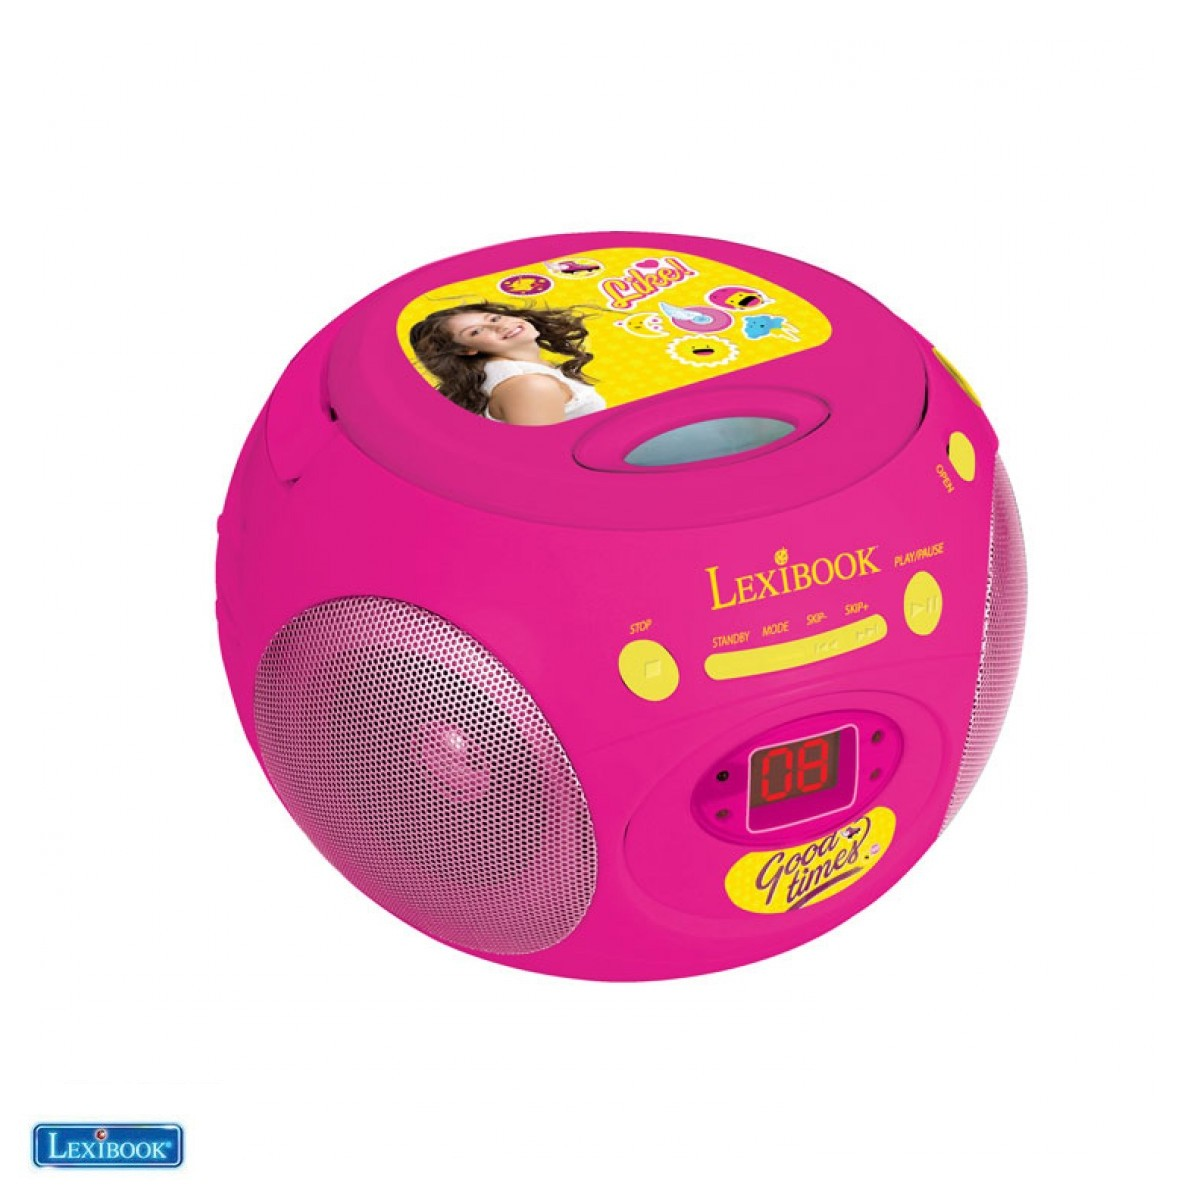 Disney Soy Luna Radio CD player